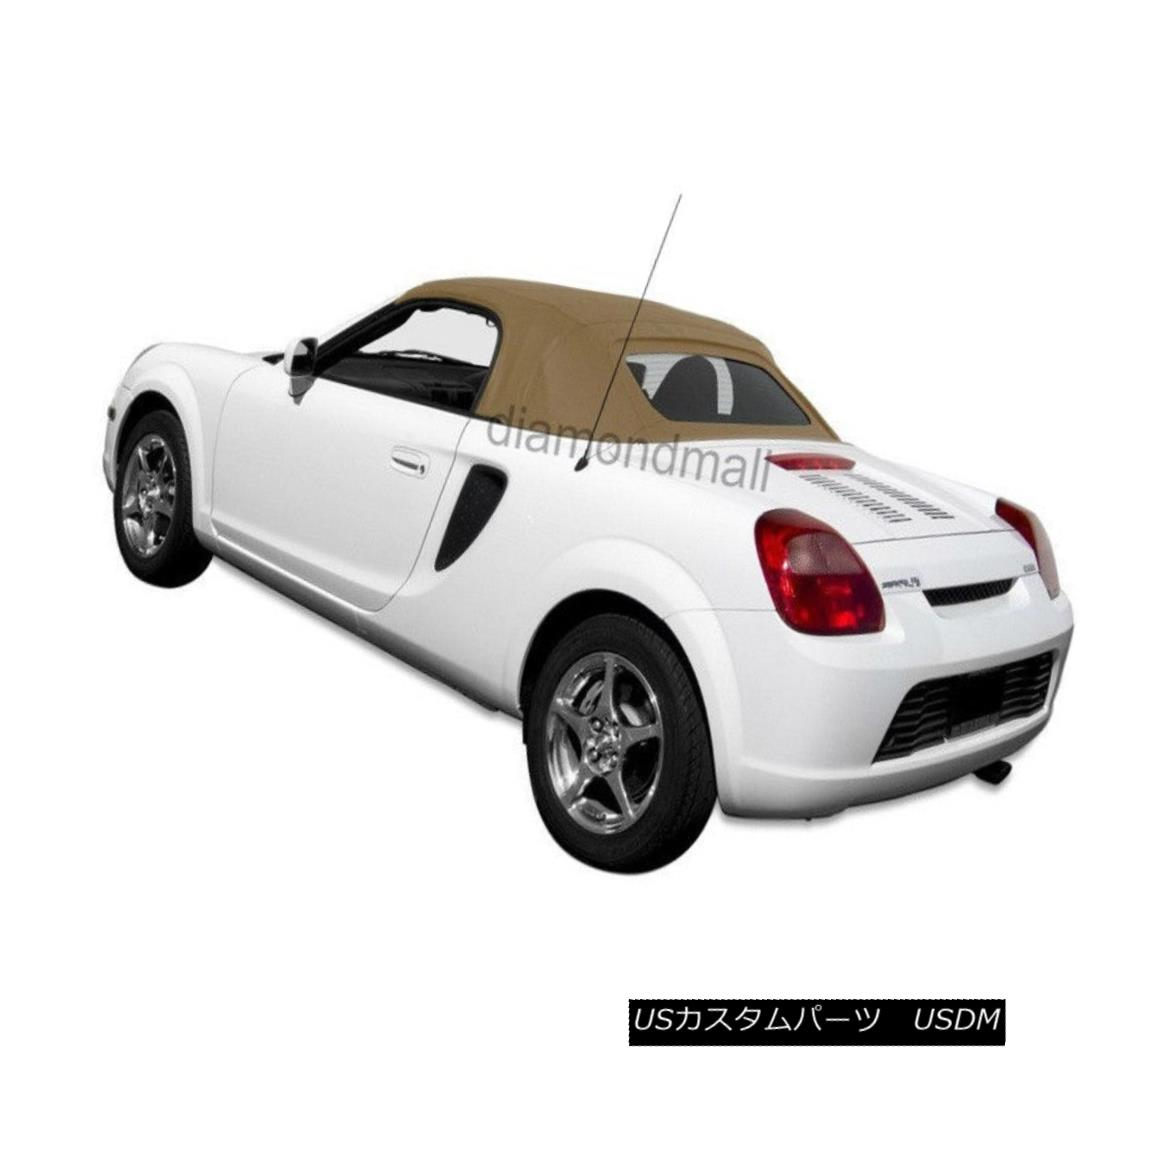 幌・ソフトトップ NEW TOYOTA MR2 Spyder 2000-2007 Convertible Soft Top Spider TAN Twill NEW TOYOTA MR2 Spyder 2000-2007コンバーチブルソフトトップスパイダーTAN Twill